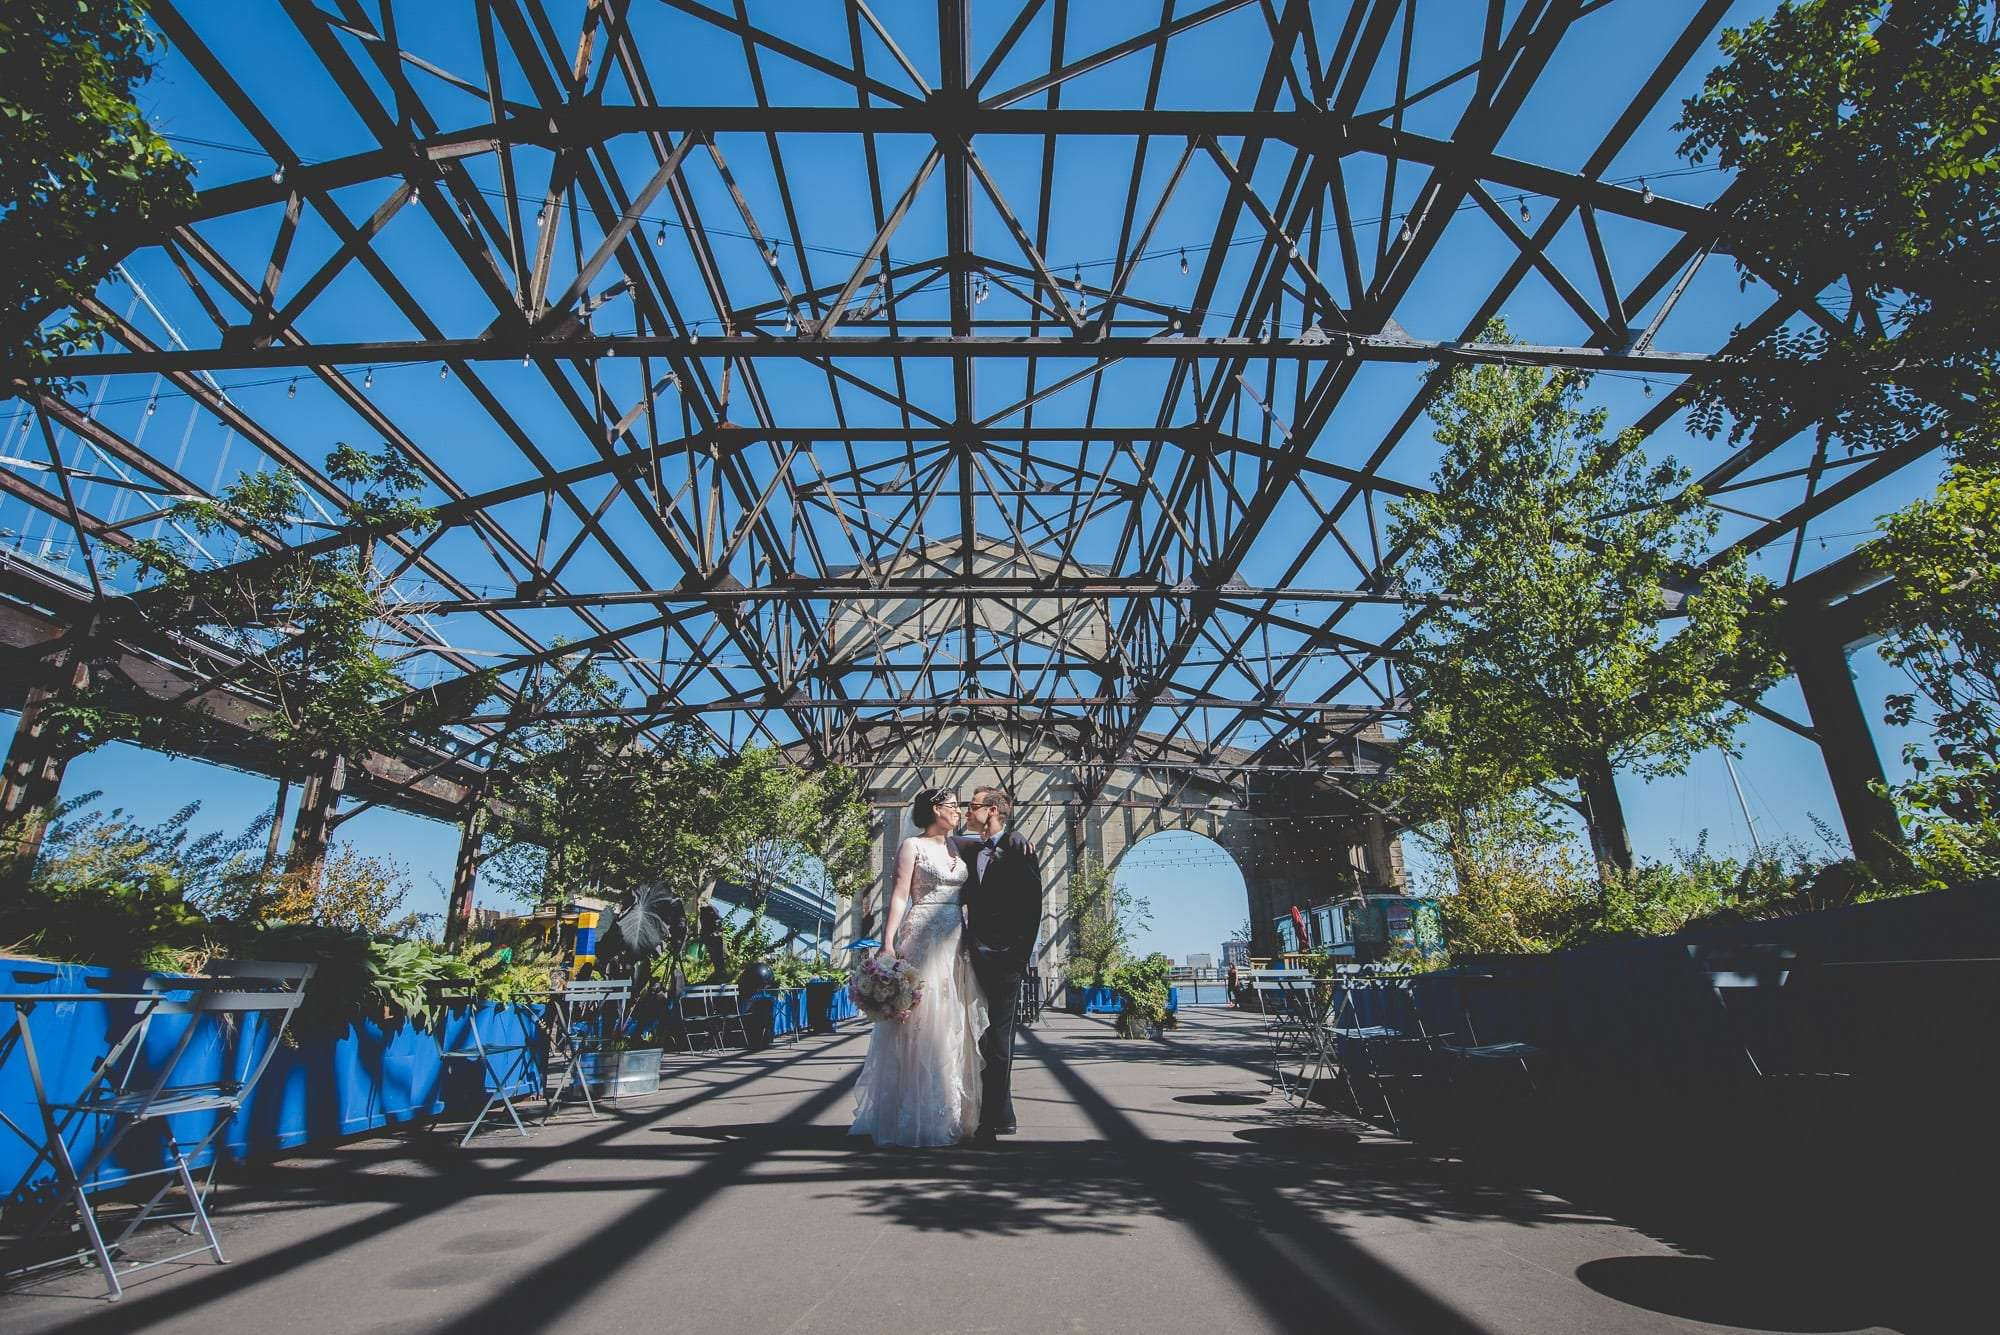 Philadelphia wedding photographer Cherry street pier wedding photos